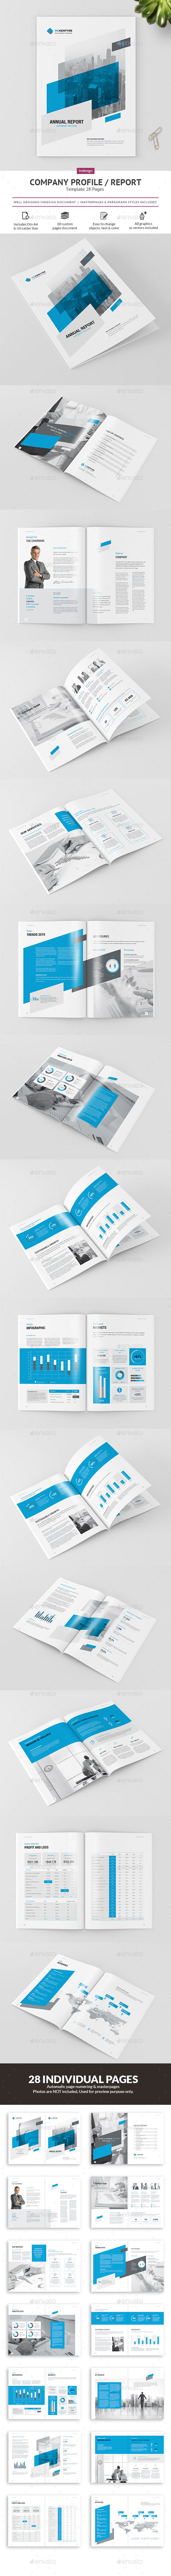 Company Profile / Annual Report - Brochures Print Templates